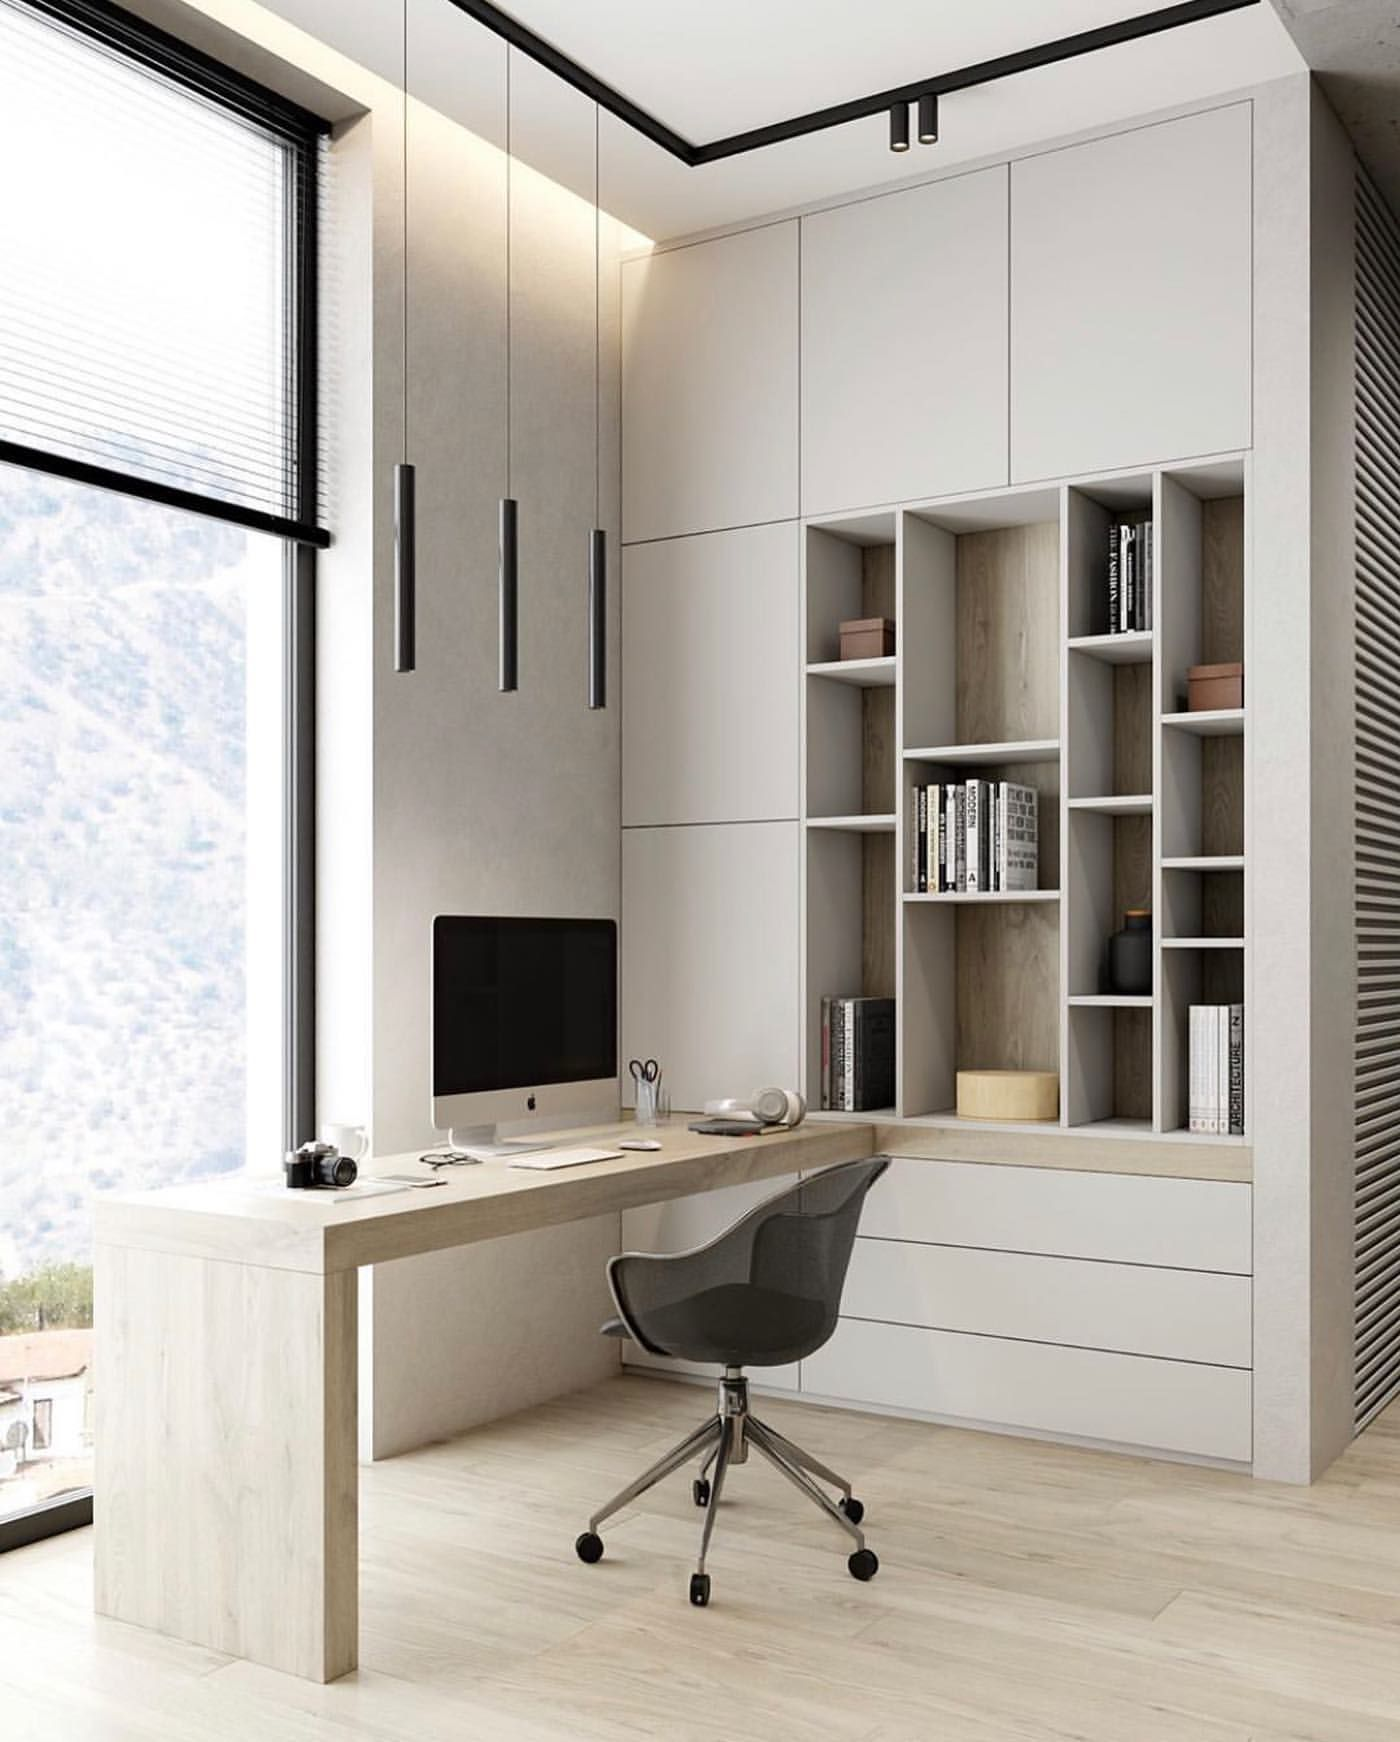 Bigger Isn T Always Better And More Is Not Always The Best At Times It S Best To Keep Things As Simple Modern Home Office Home Office Design Home Office Decor